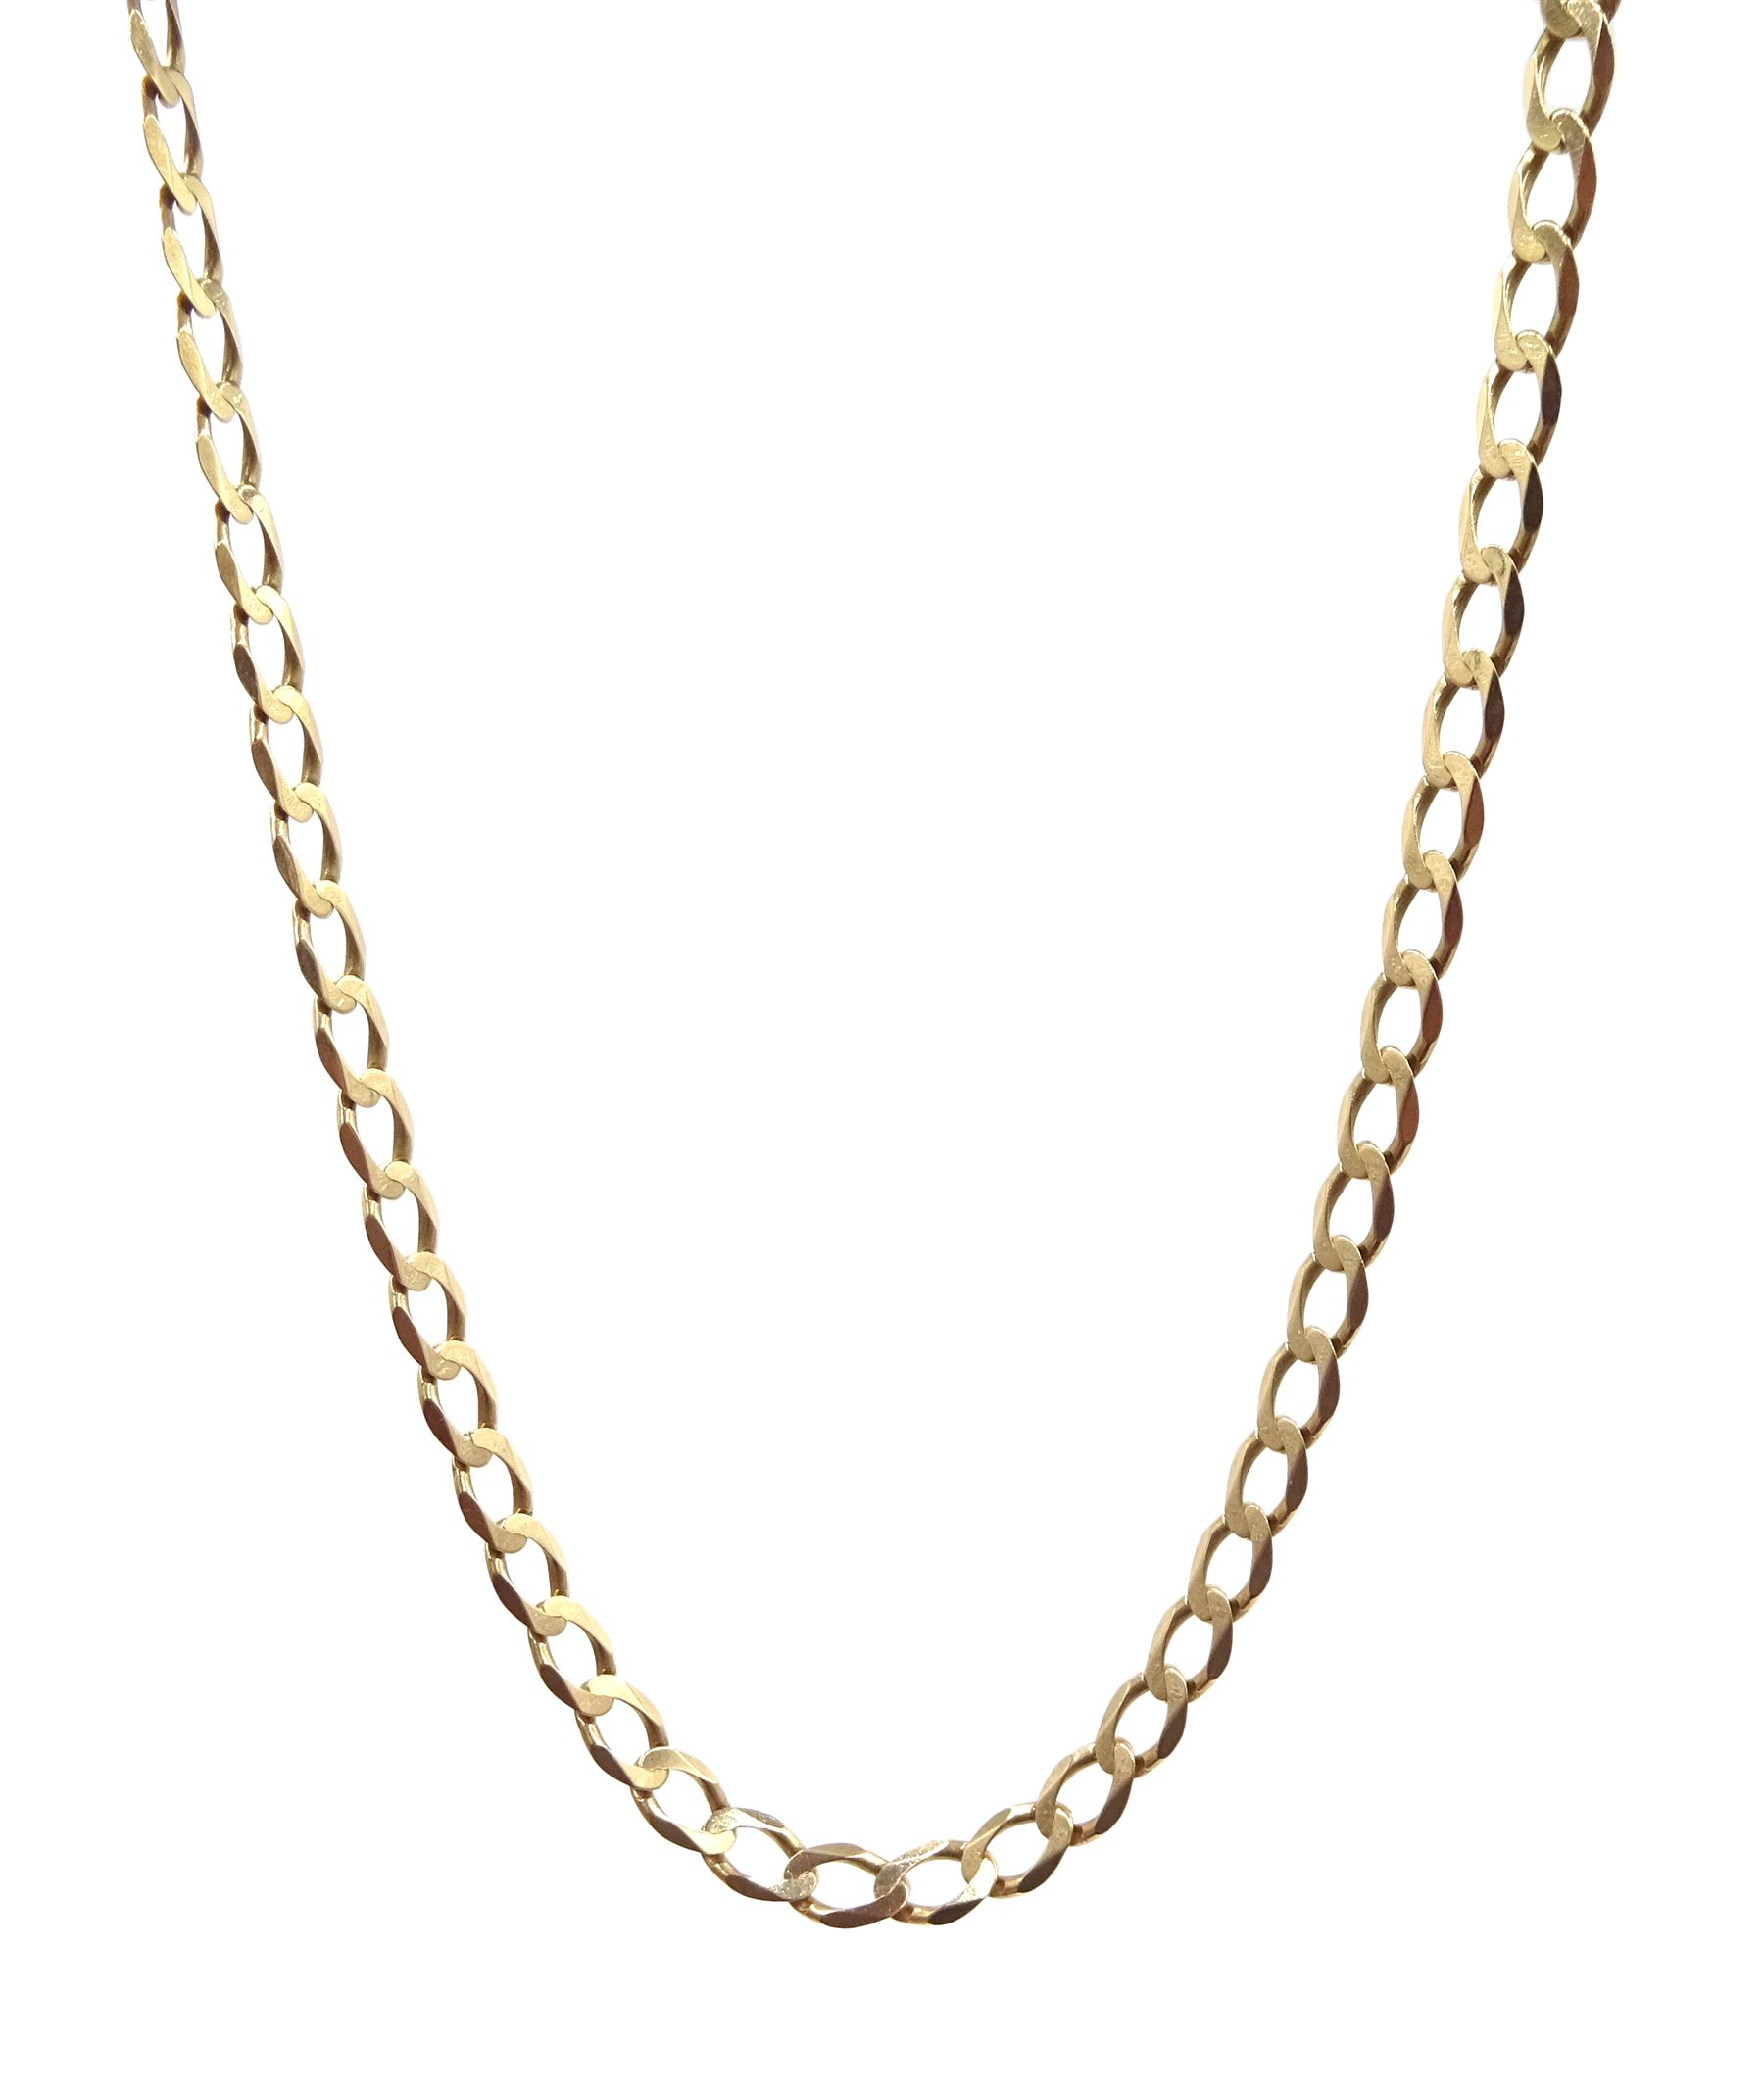 9ct gold flattened curb link necklace